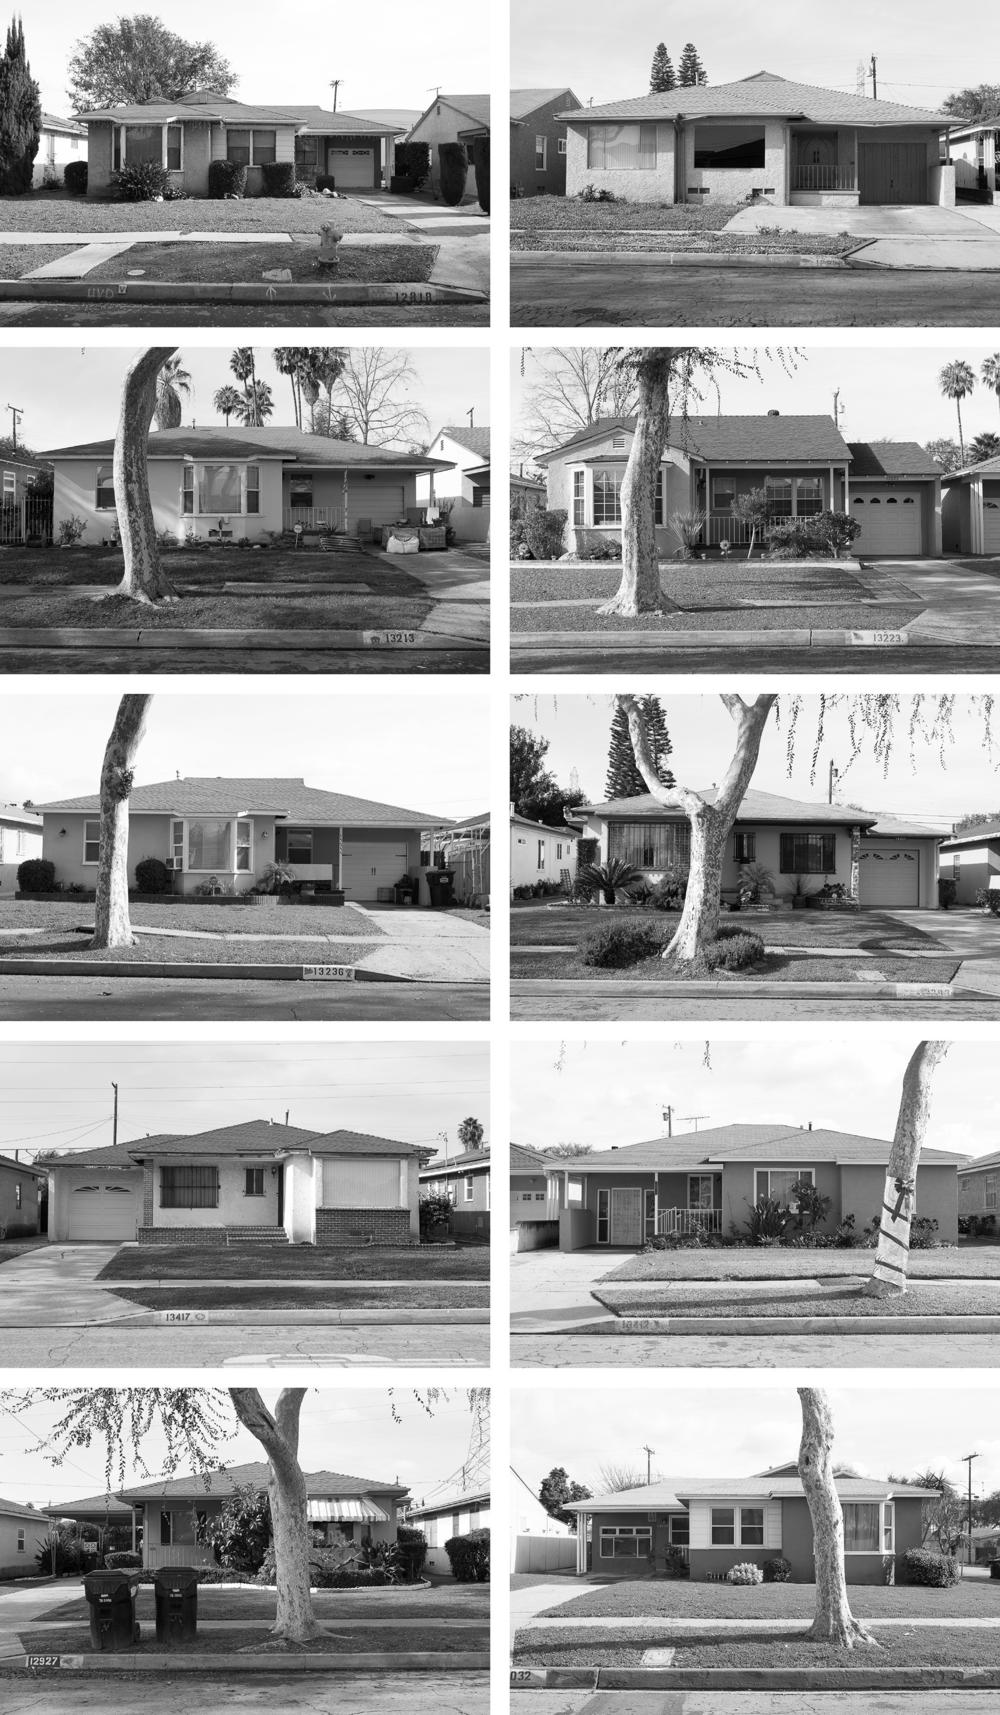 Homes from the Carver Manor section of Willowbrook, Calif. A Black real estate agent named Velma Grant acquired the land for these 250 tract homes and hired Williams to design them for Black veterans returning from World War II. Instead of creating